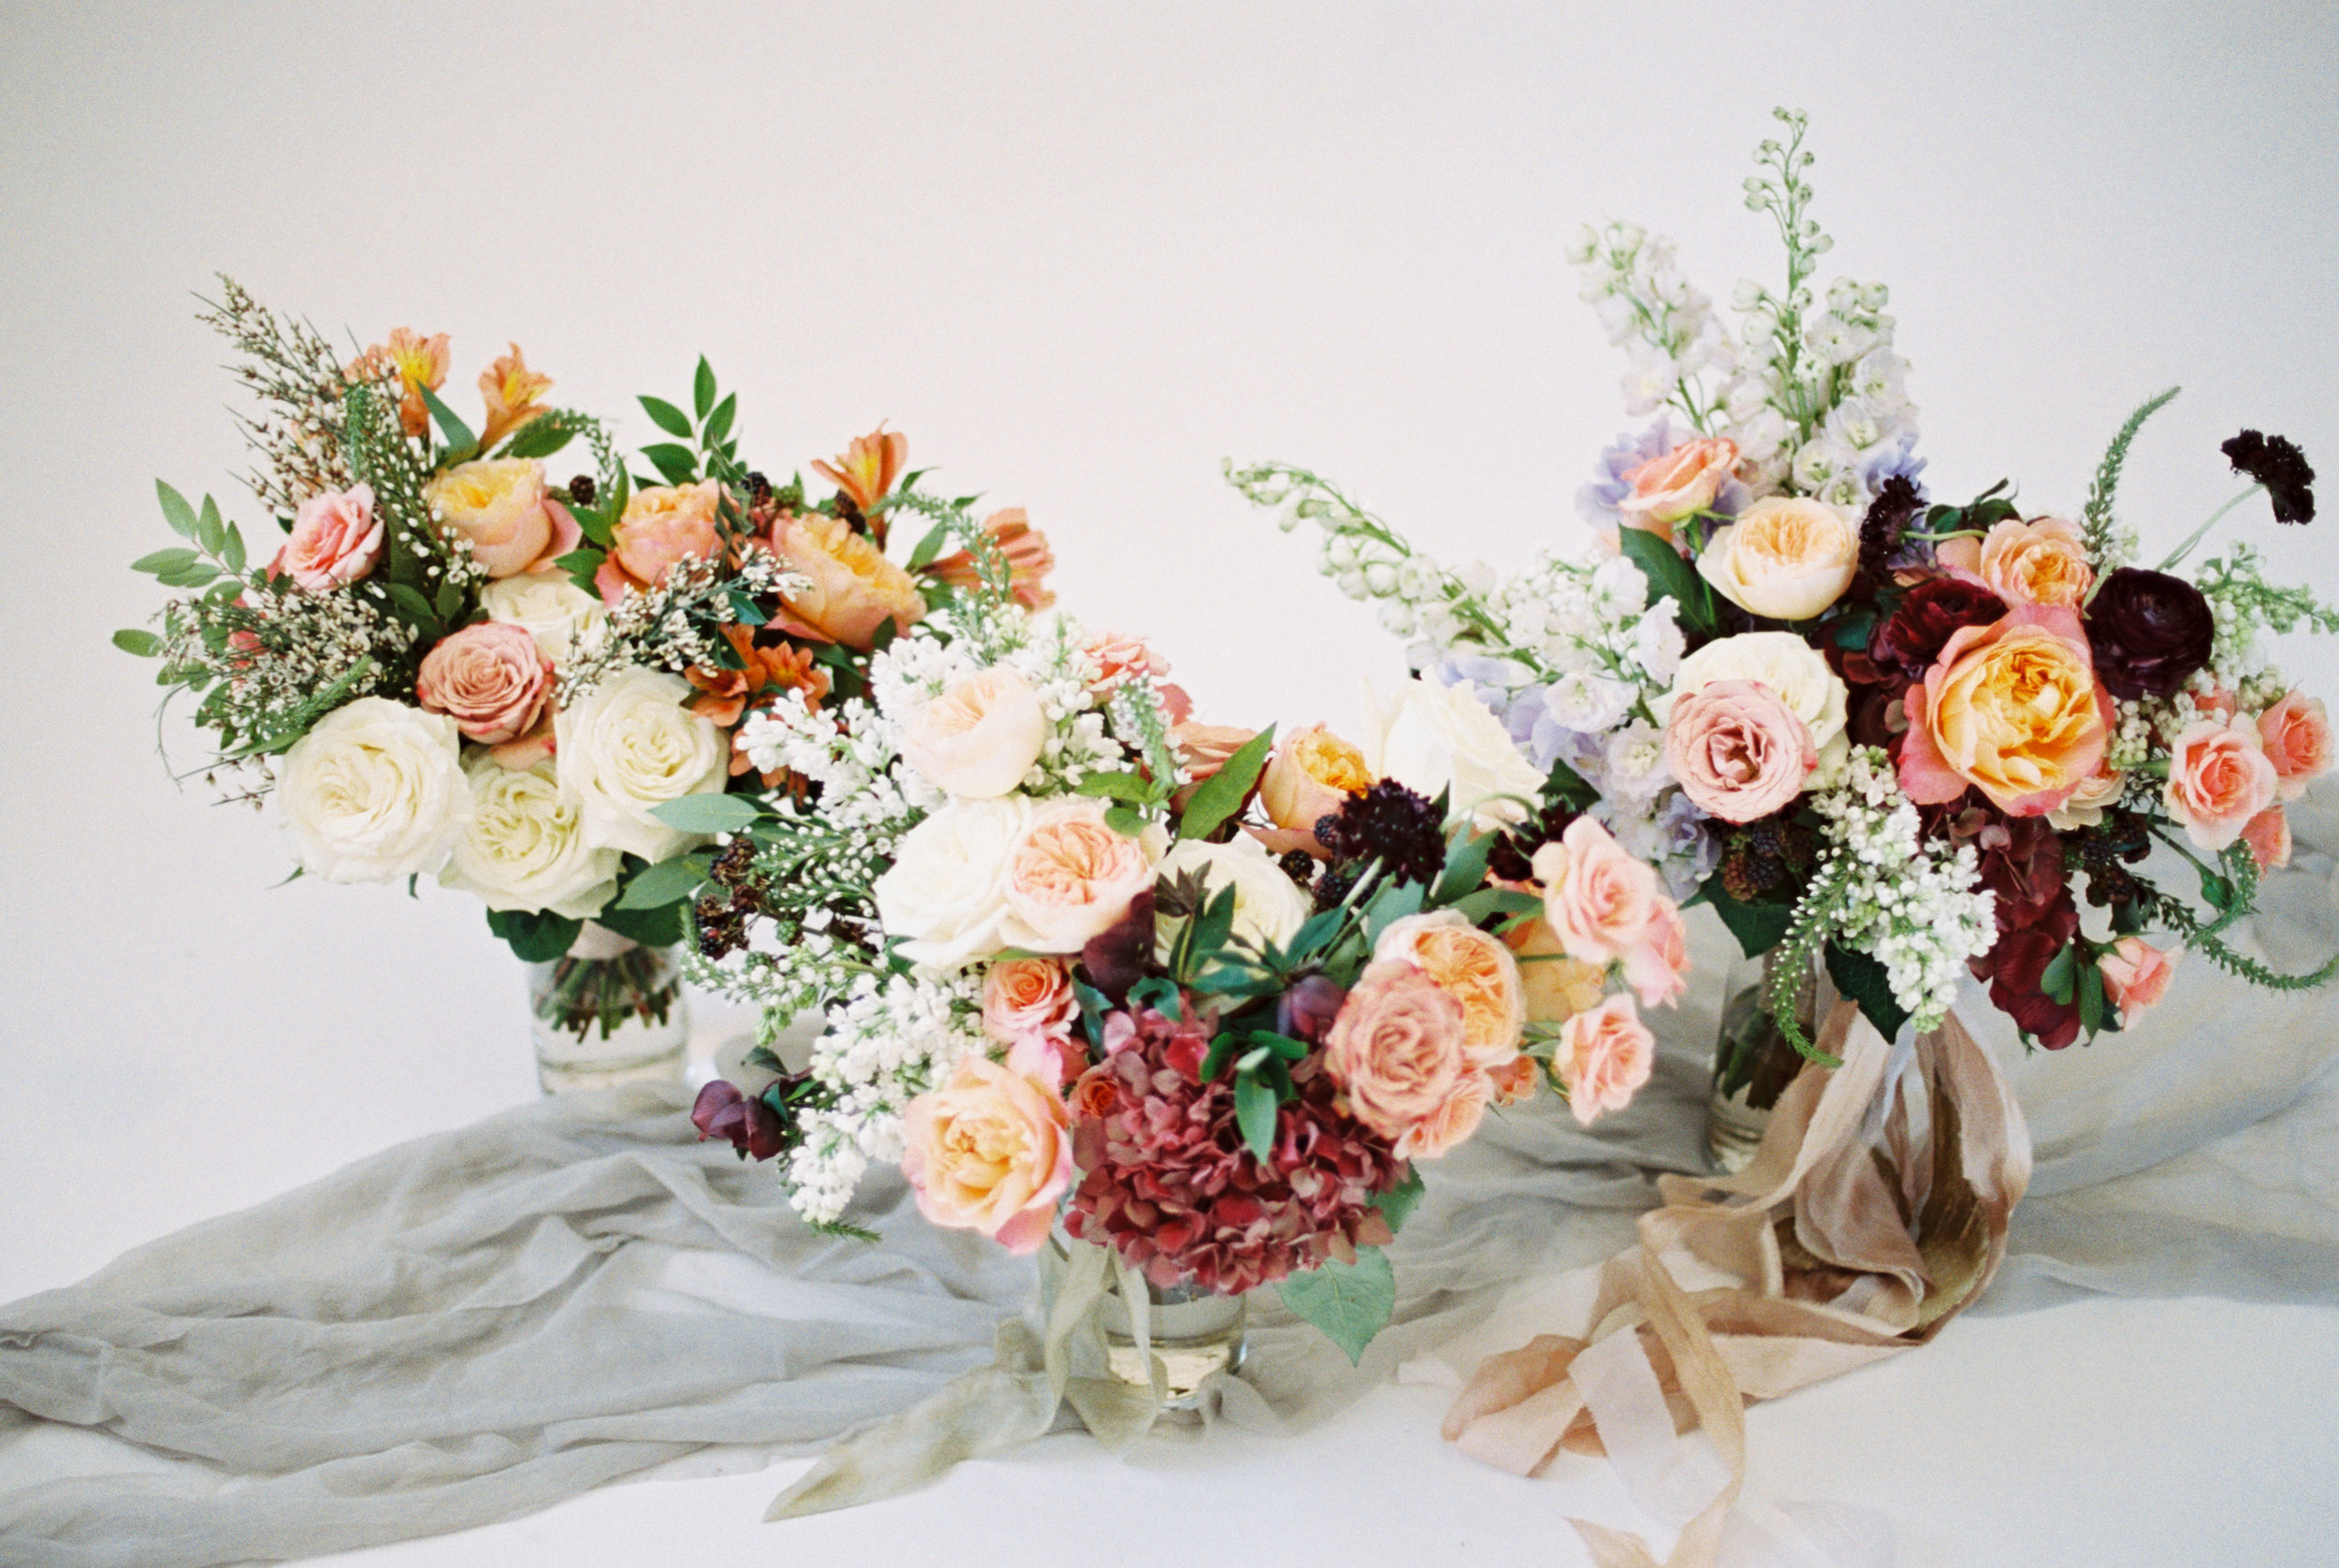 Three bouquets at three price points with The Styled Soiree, Emma Lea Flora, and Sara Lynn Photo